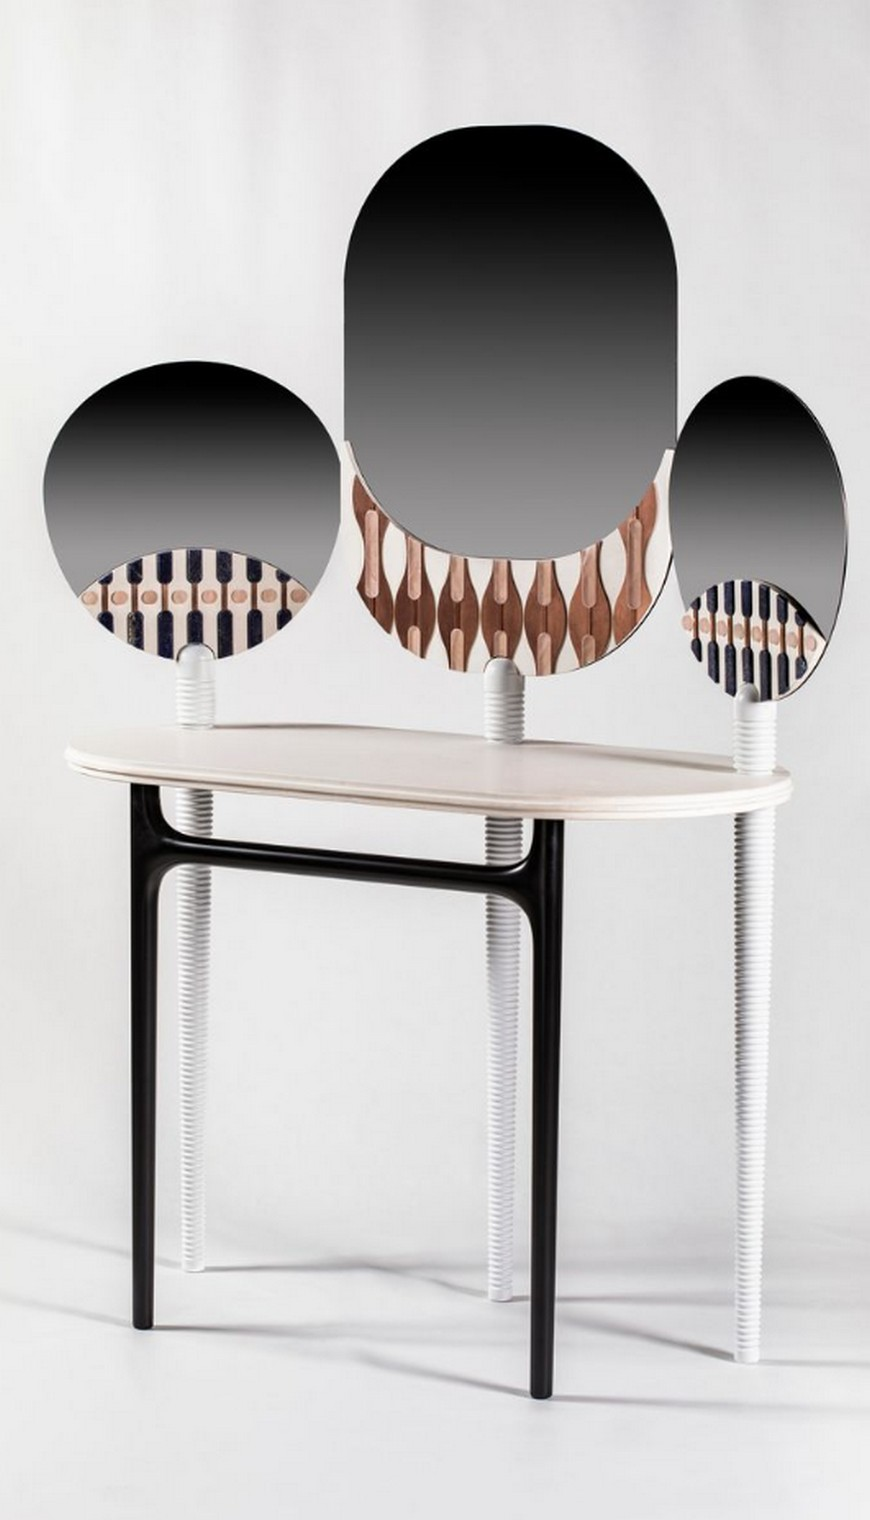 10 Bespoke Dressing Tables To Glam Up Your Luxurious Walk-In Closet bespoke dressing table 10 Bespoke Dressing Tables To Glam Up Your Luxurious Walk-In Closet 10 Bespoke Dressing Tables To Glam Up Your Luxurious Walk In Closet 9